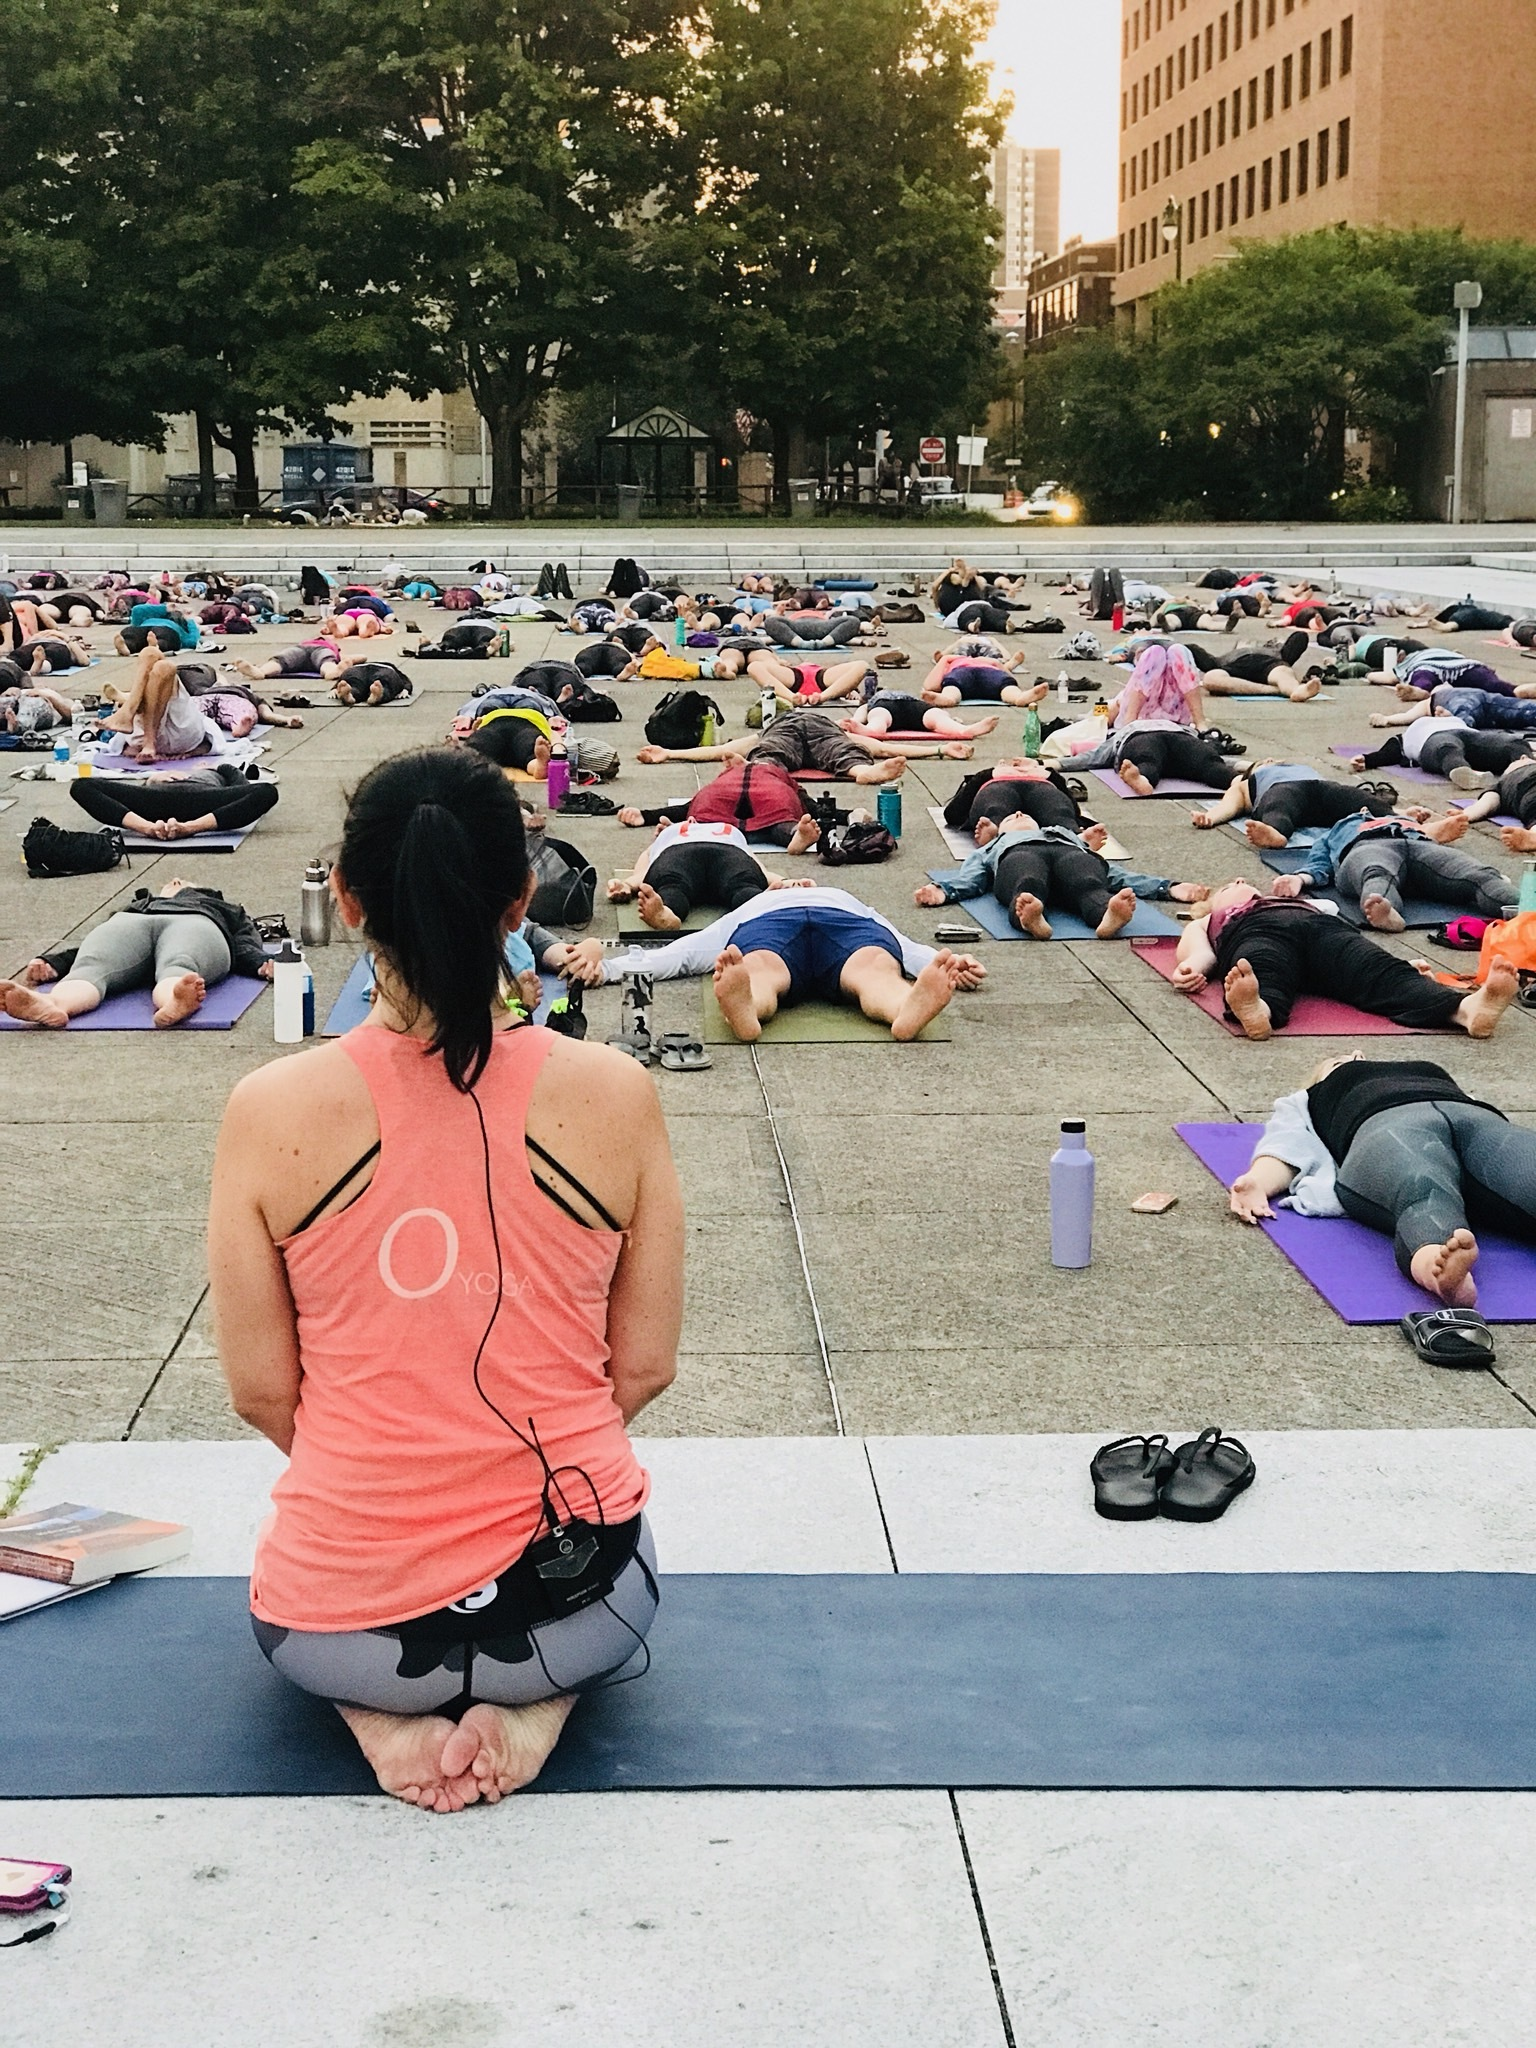 Tiffany Cagwin leading an outdoor yoga session in a city